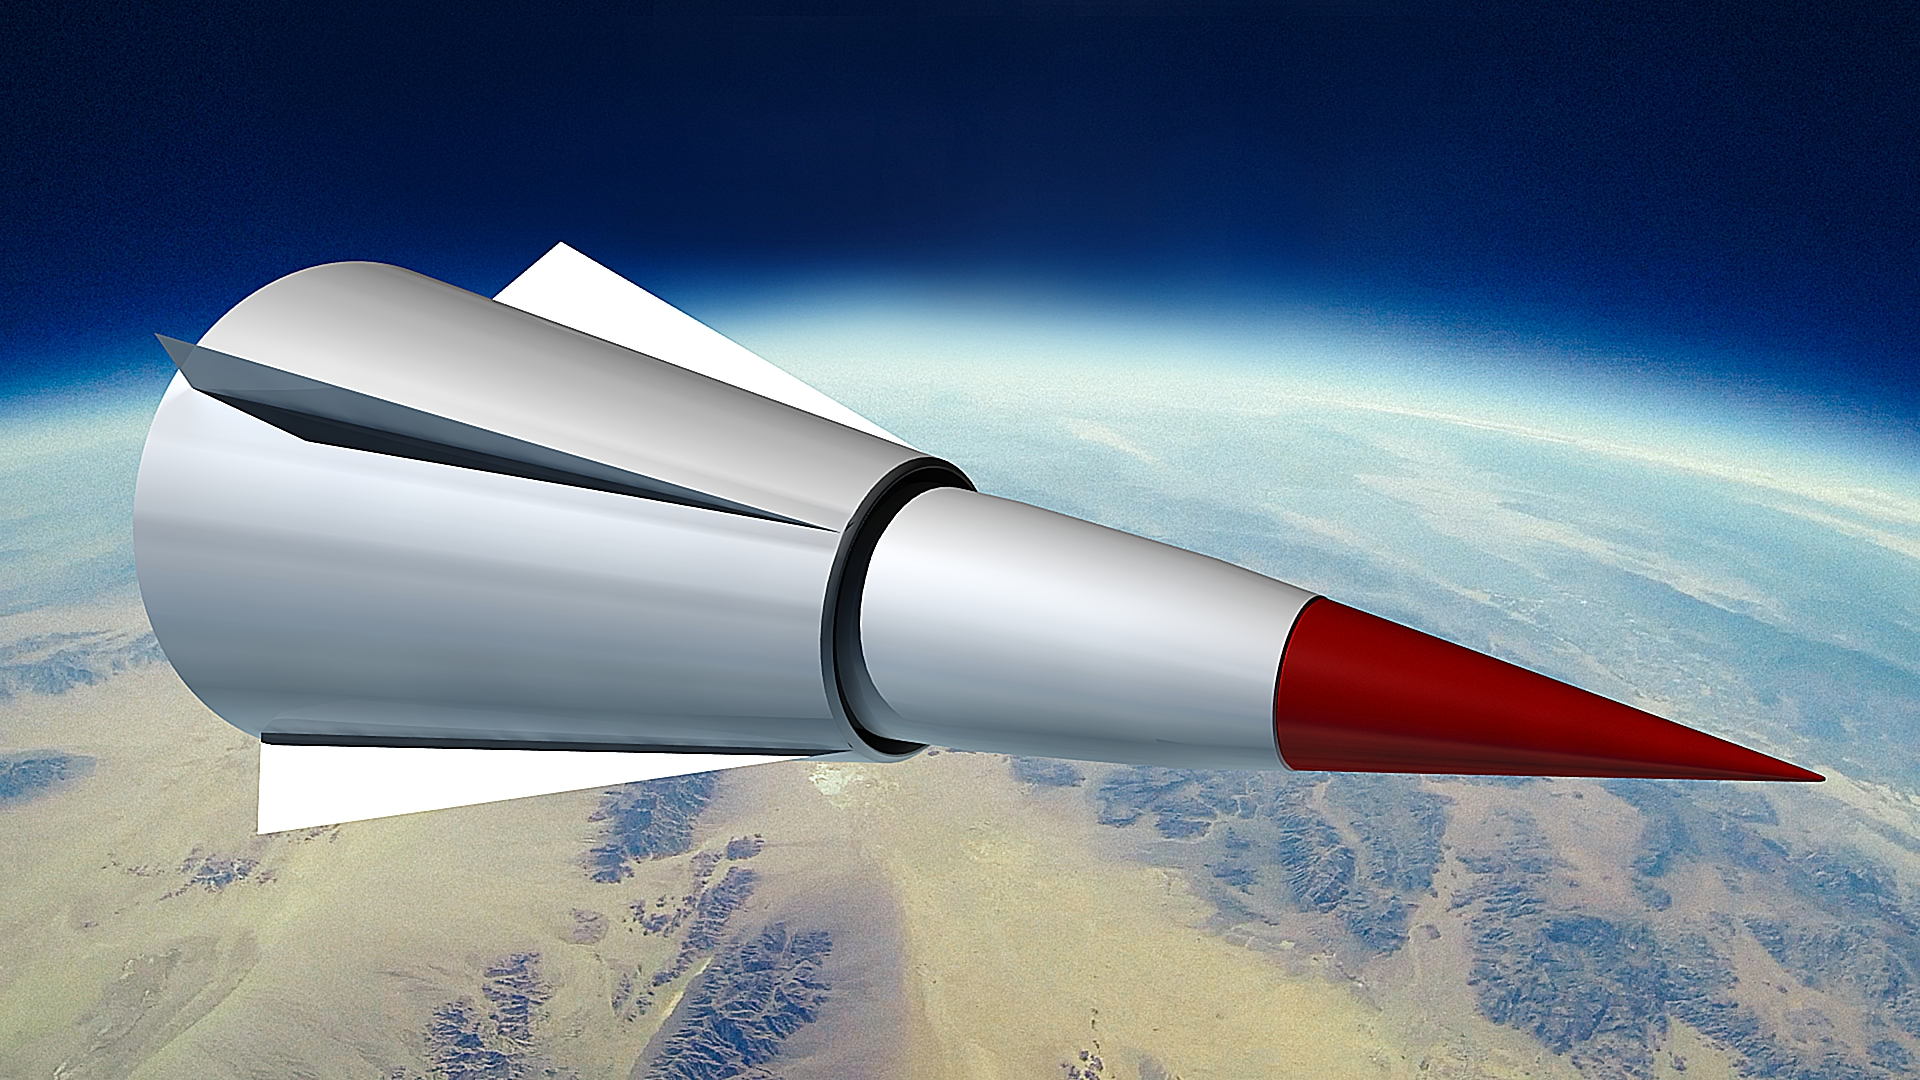 hypersonic ballistic missile